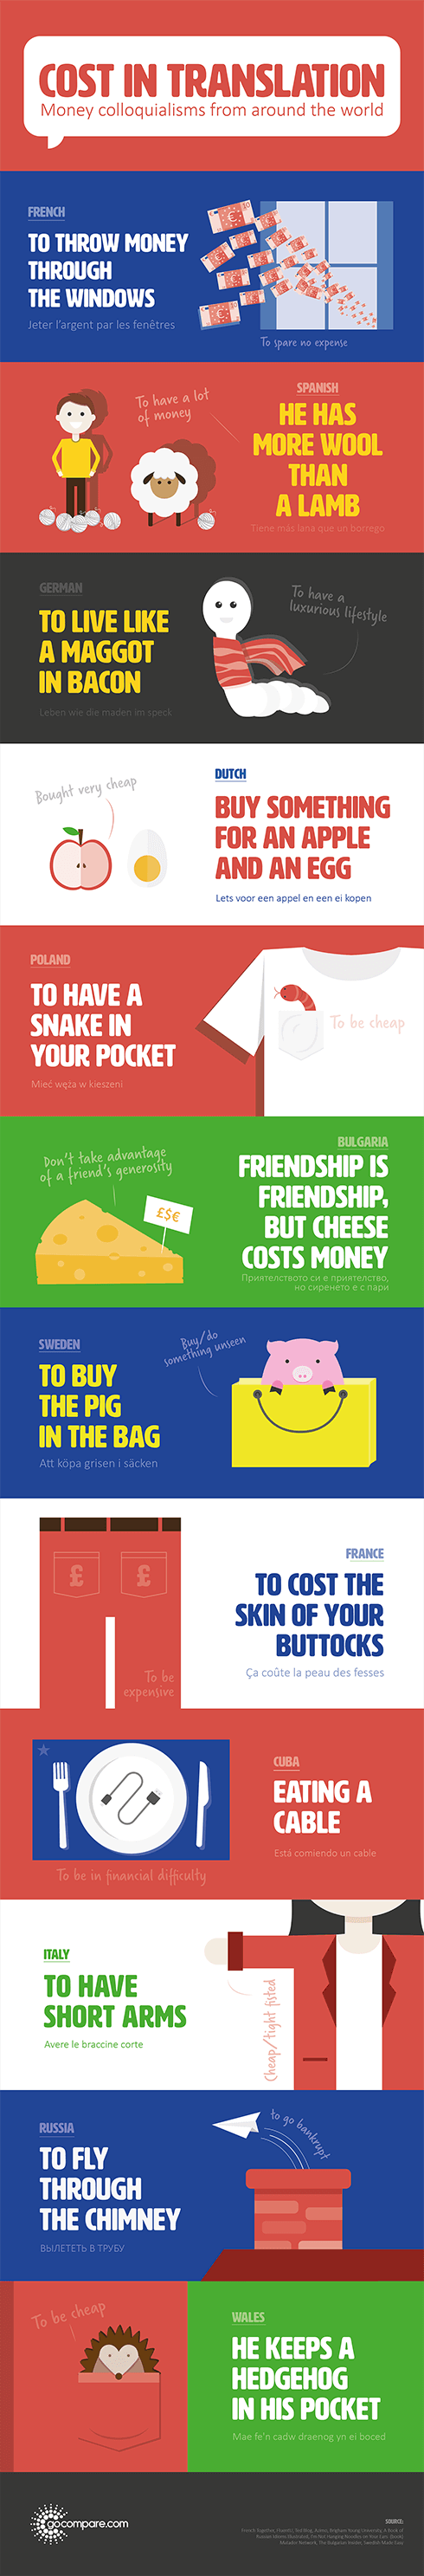 http://www.gocompare.com/infographics-content/540968/cost-in-translation_main.png?view=Standard